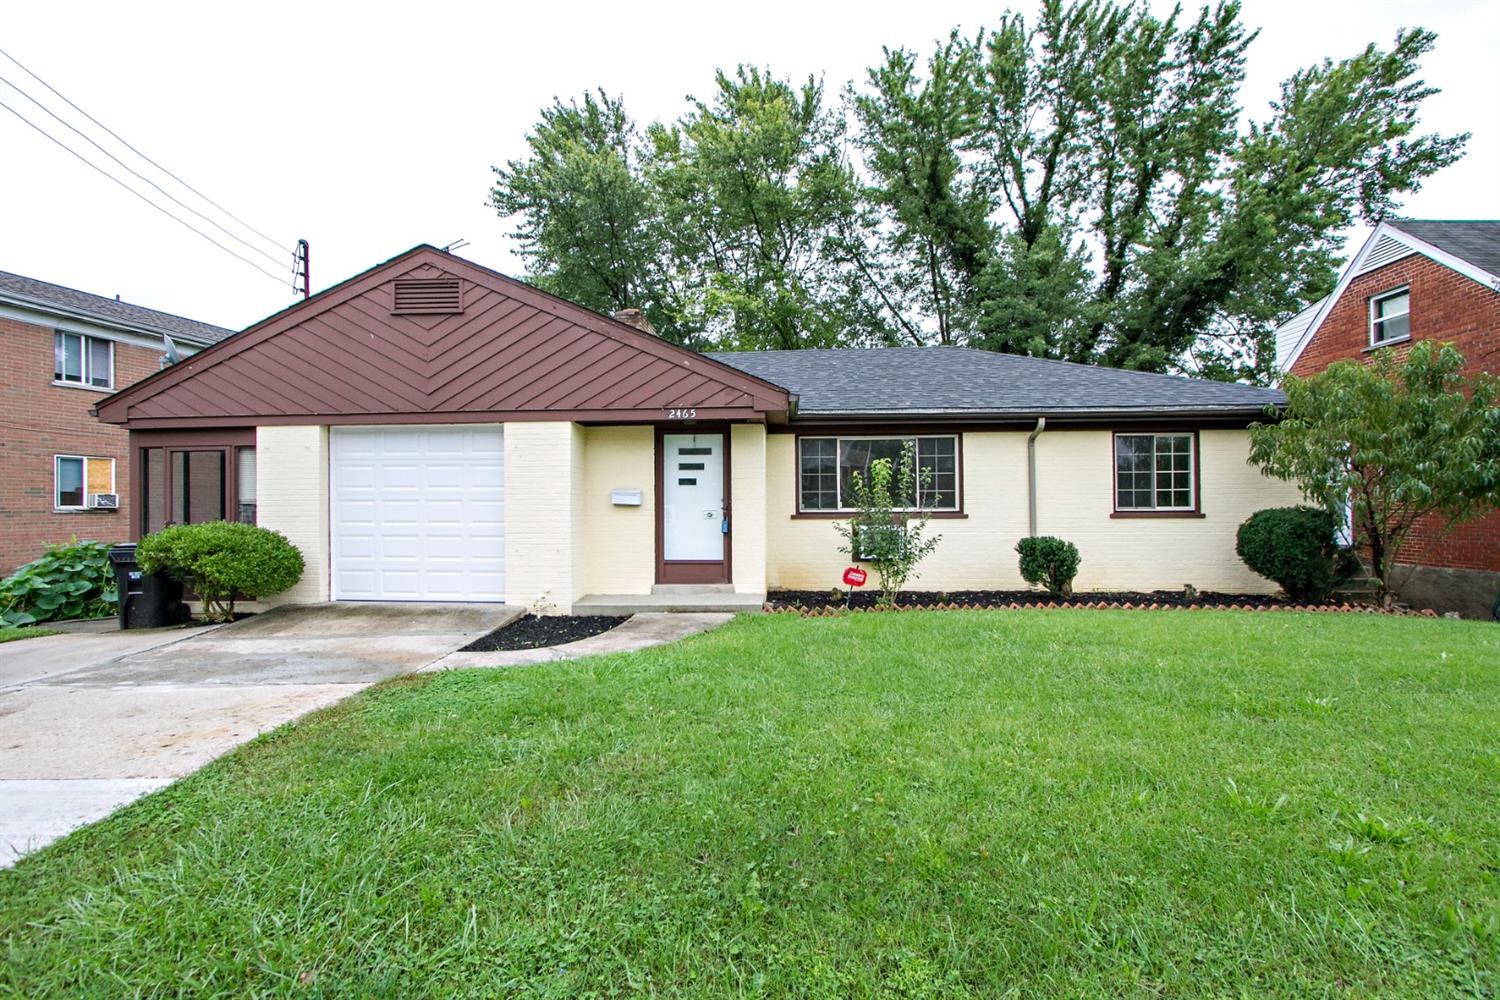 Photo 1 for 2465 Montana Ave Westwood, OH 45211